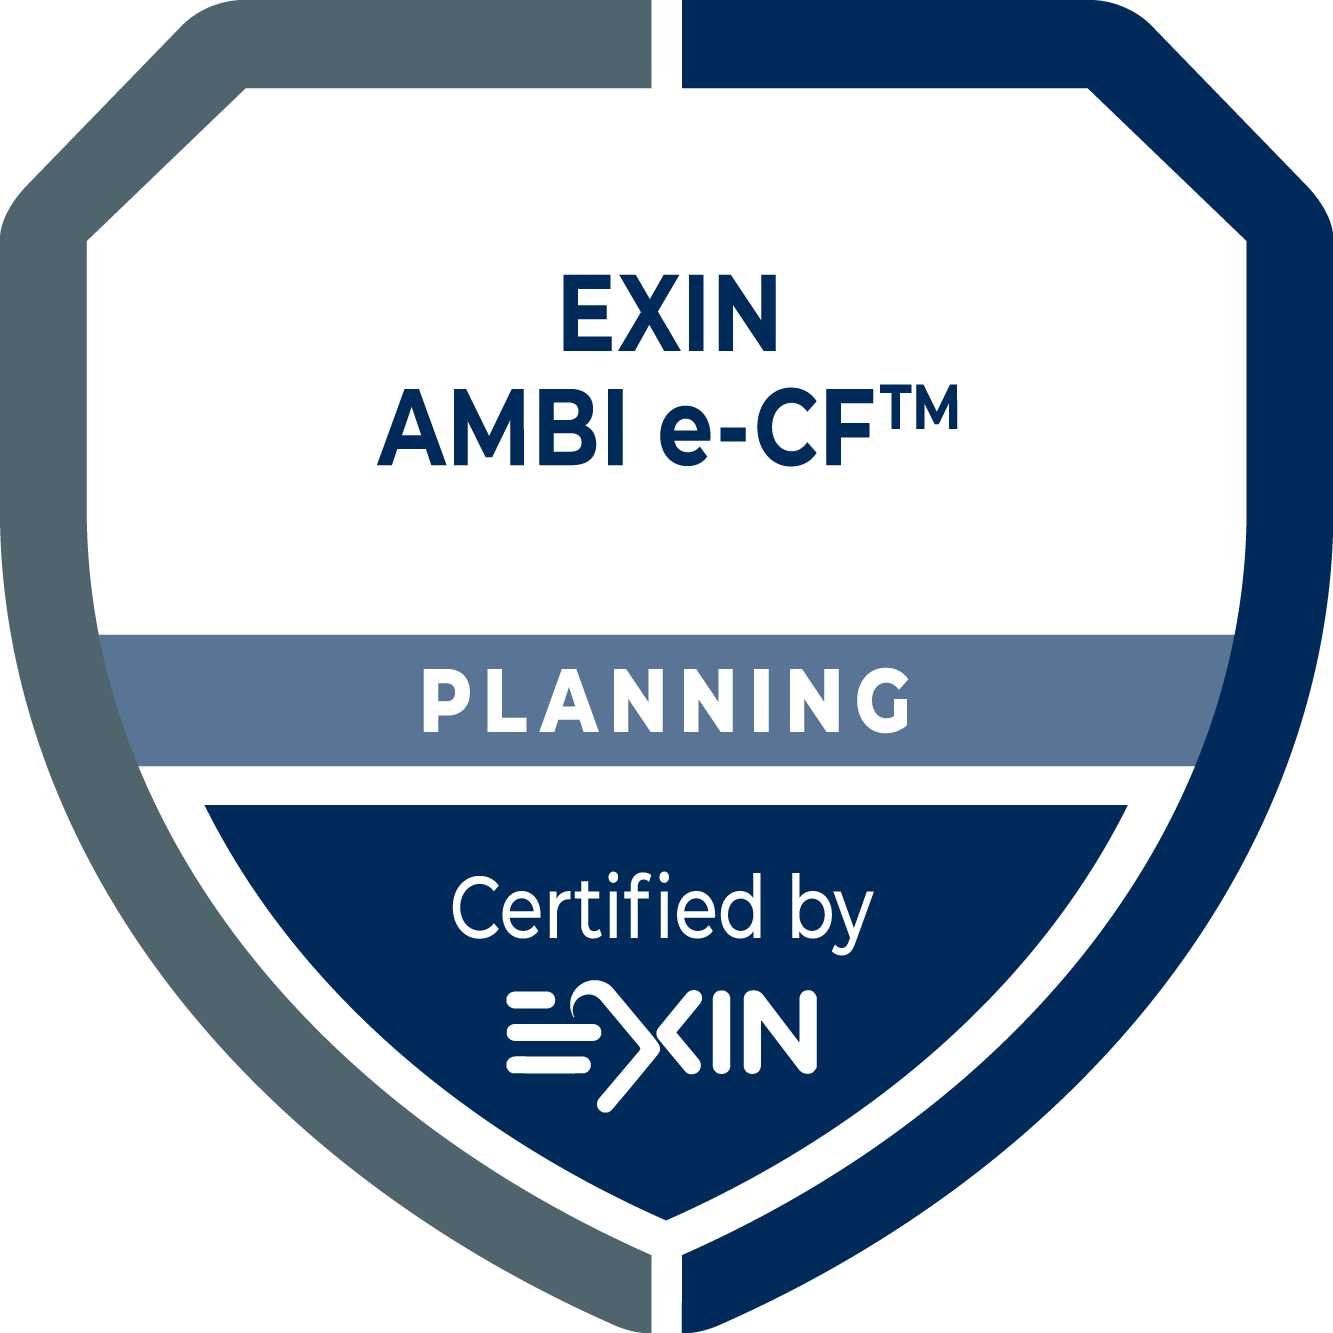 EXIN AMBI e-CF®: Planning